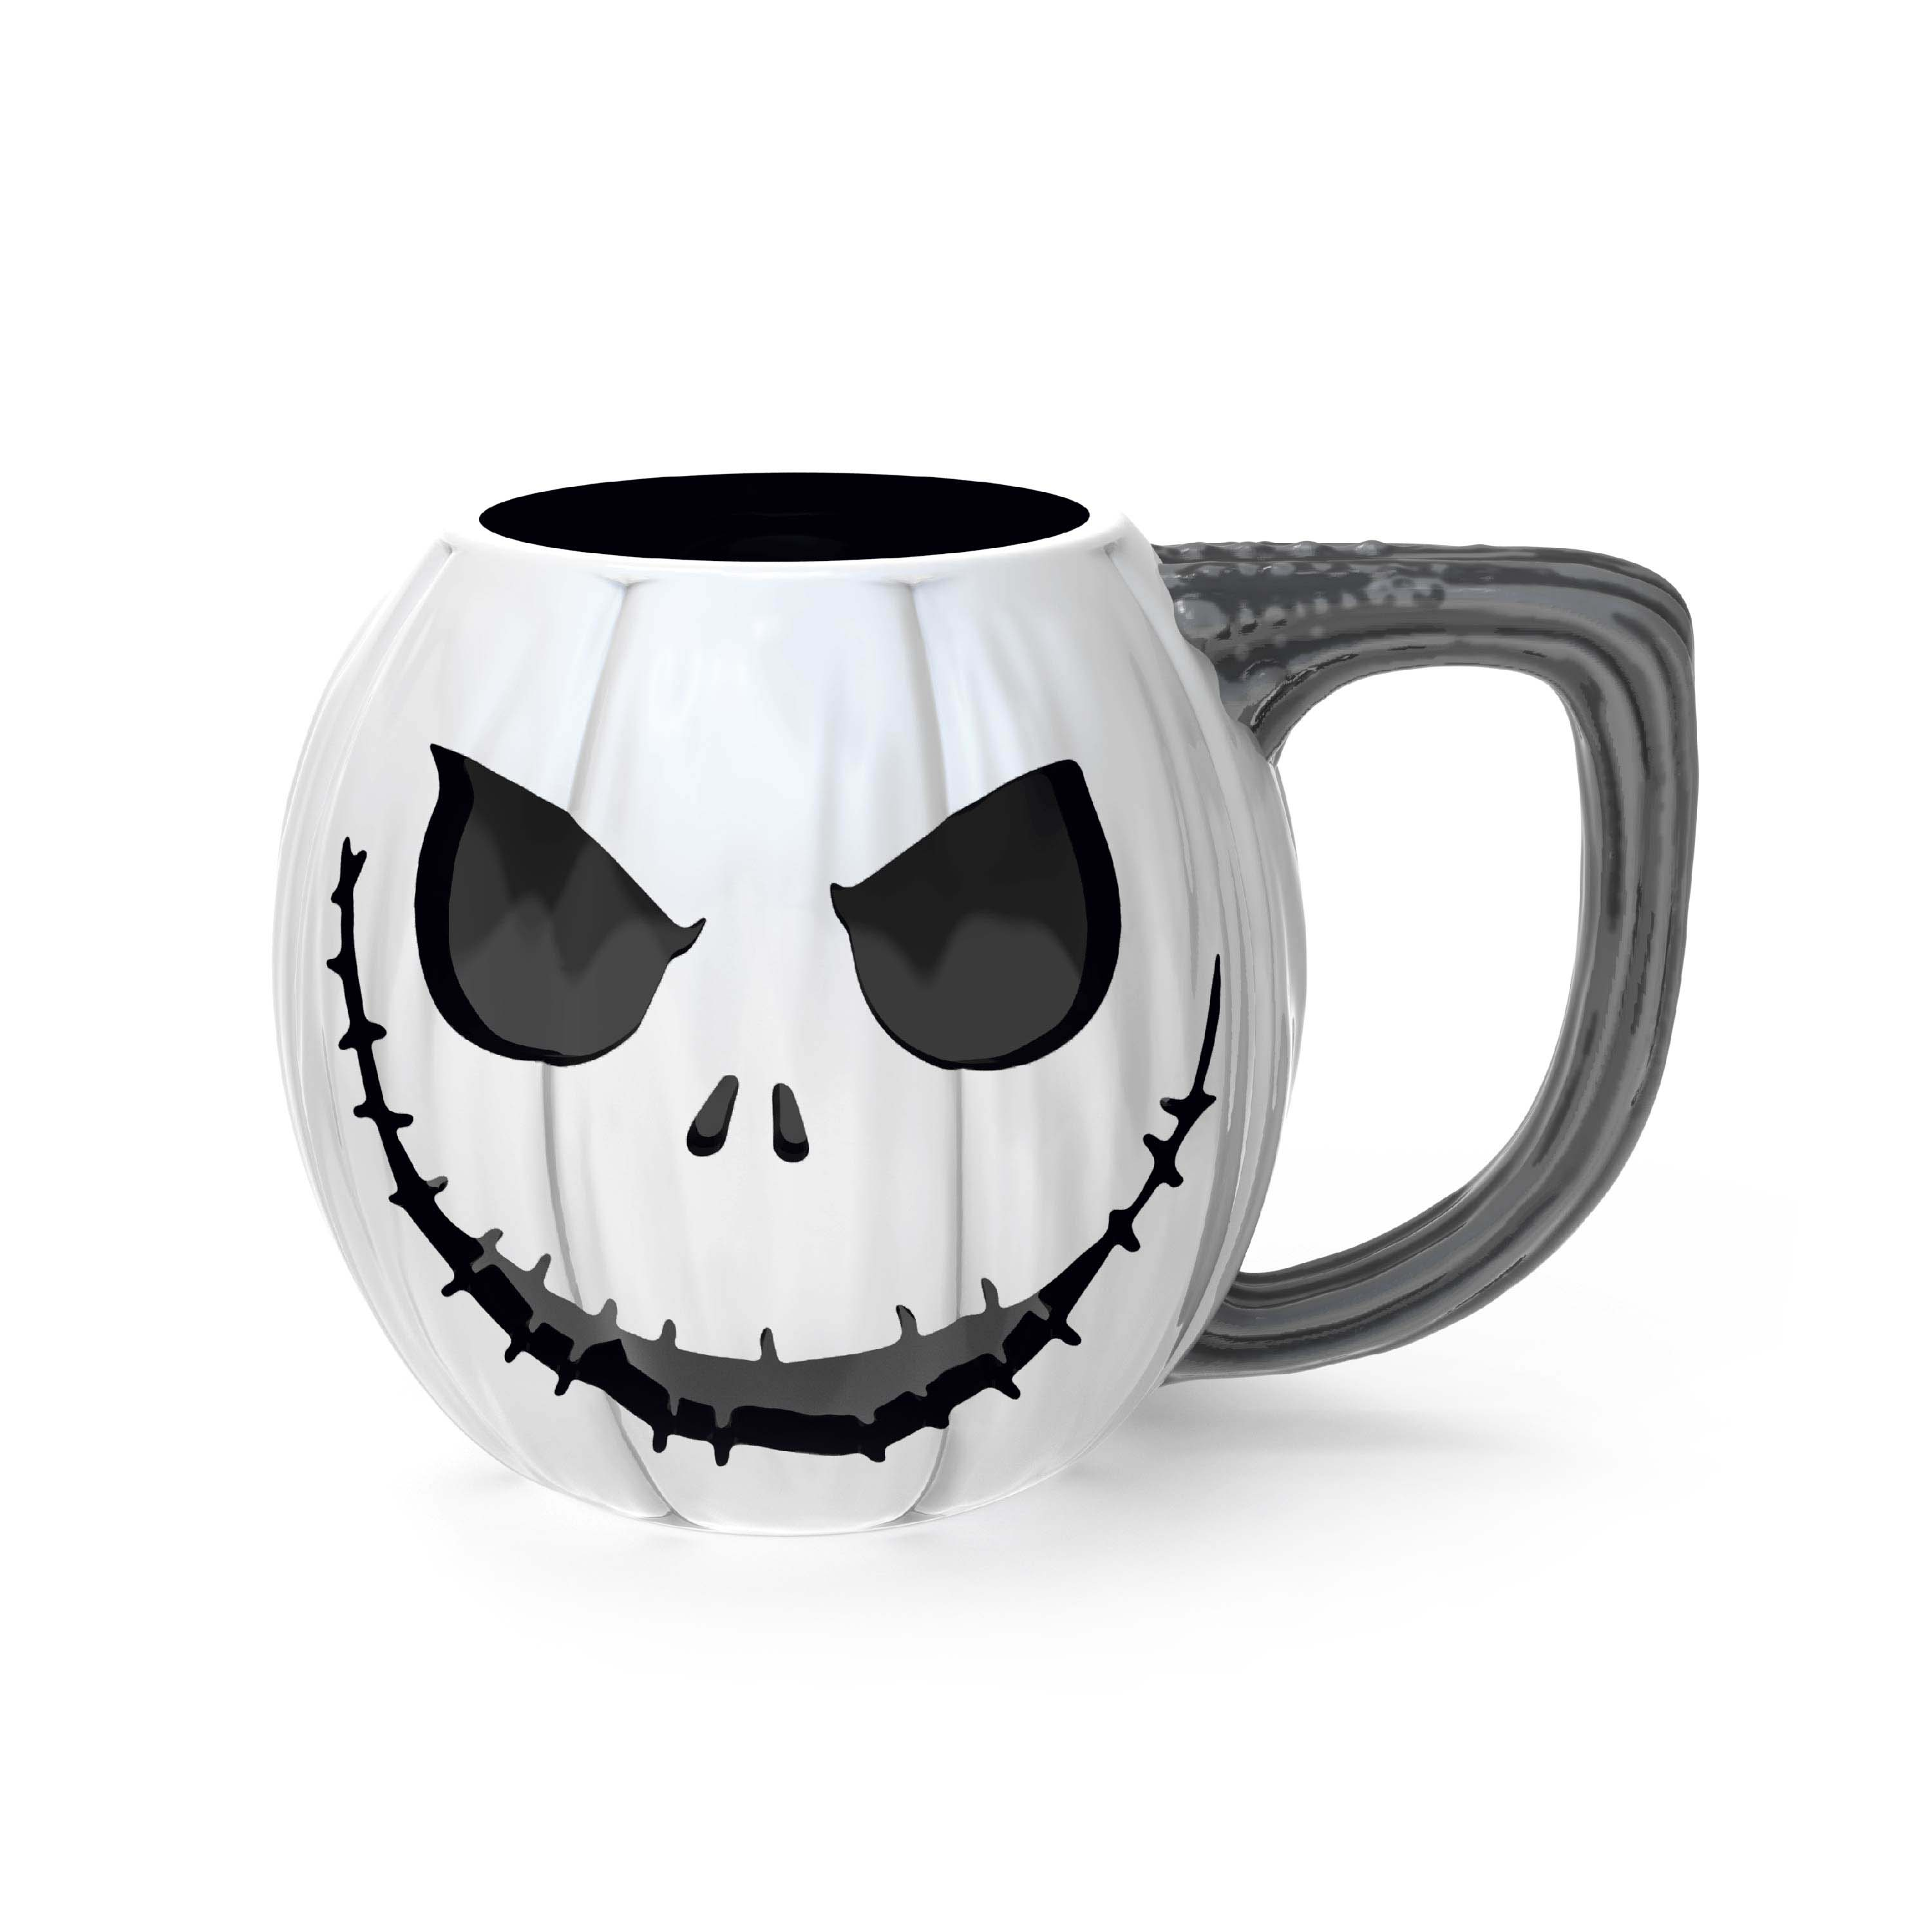 Disney The Nightmare Before Christmas 15 ounce Mug and Spoon, Jack Skellington